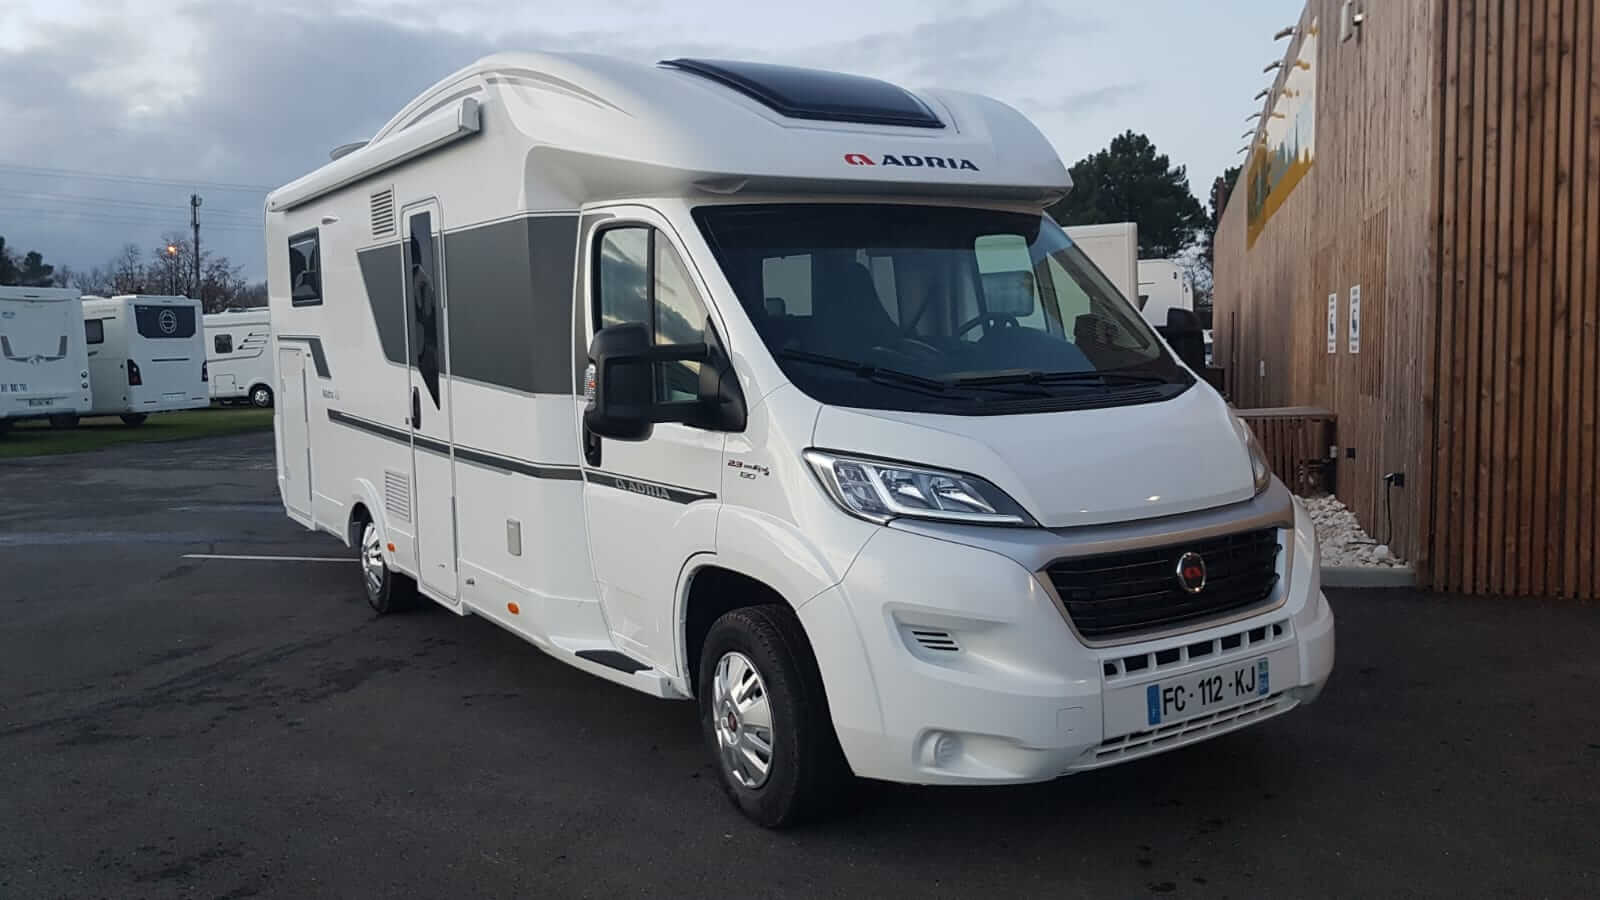 camping-car ADRIA MATRIX 670 DC PLUS